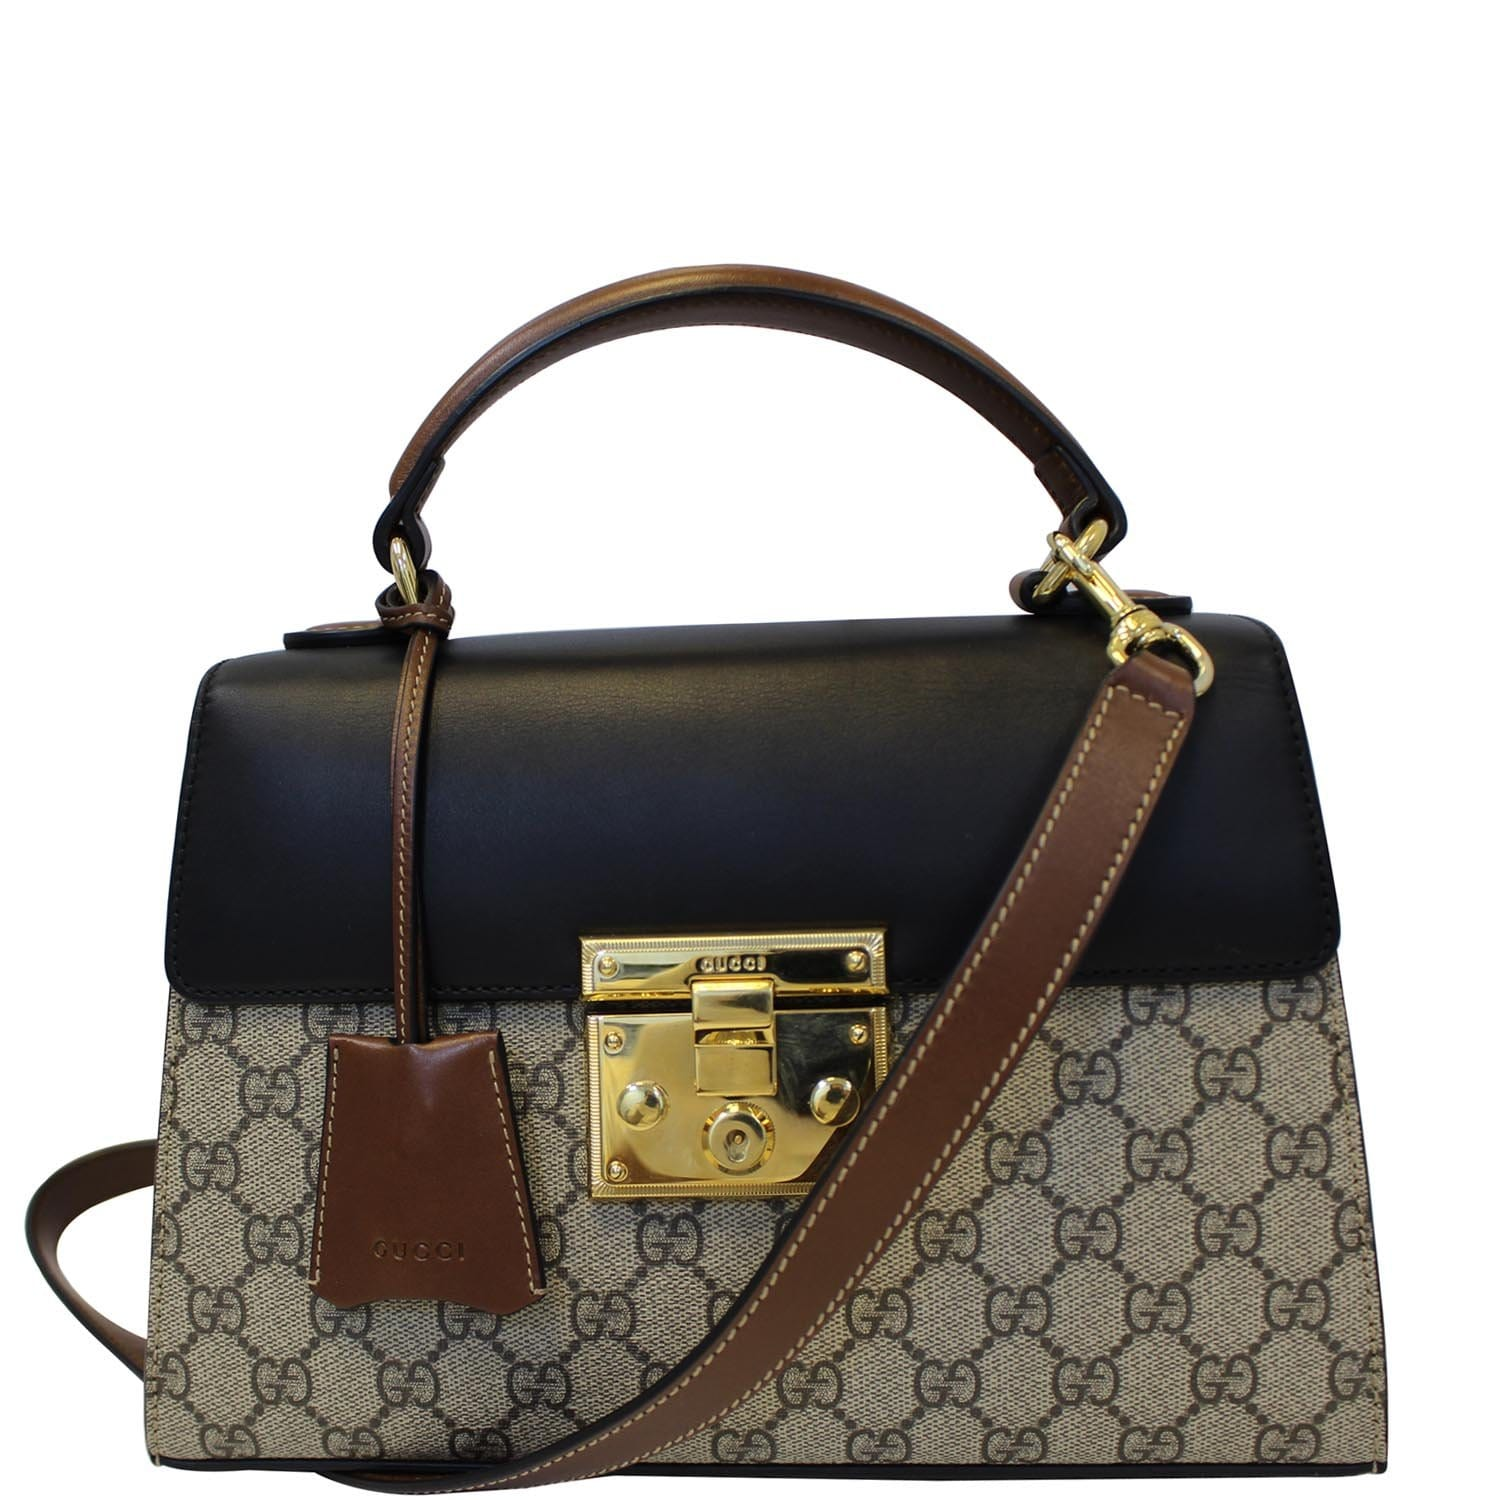 e400d9d0fdecc5 GUCCI Small Padlock GG Supreme Monogram Top Handle Crossbody Bag Beige